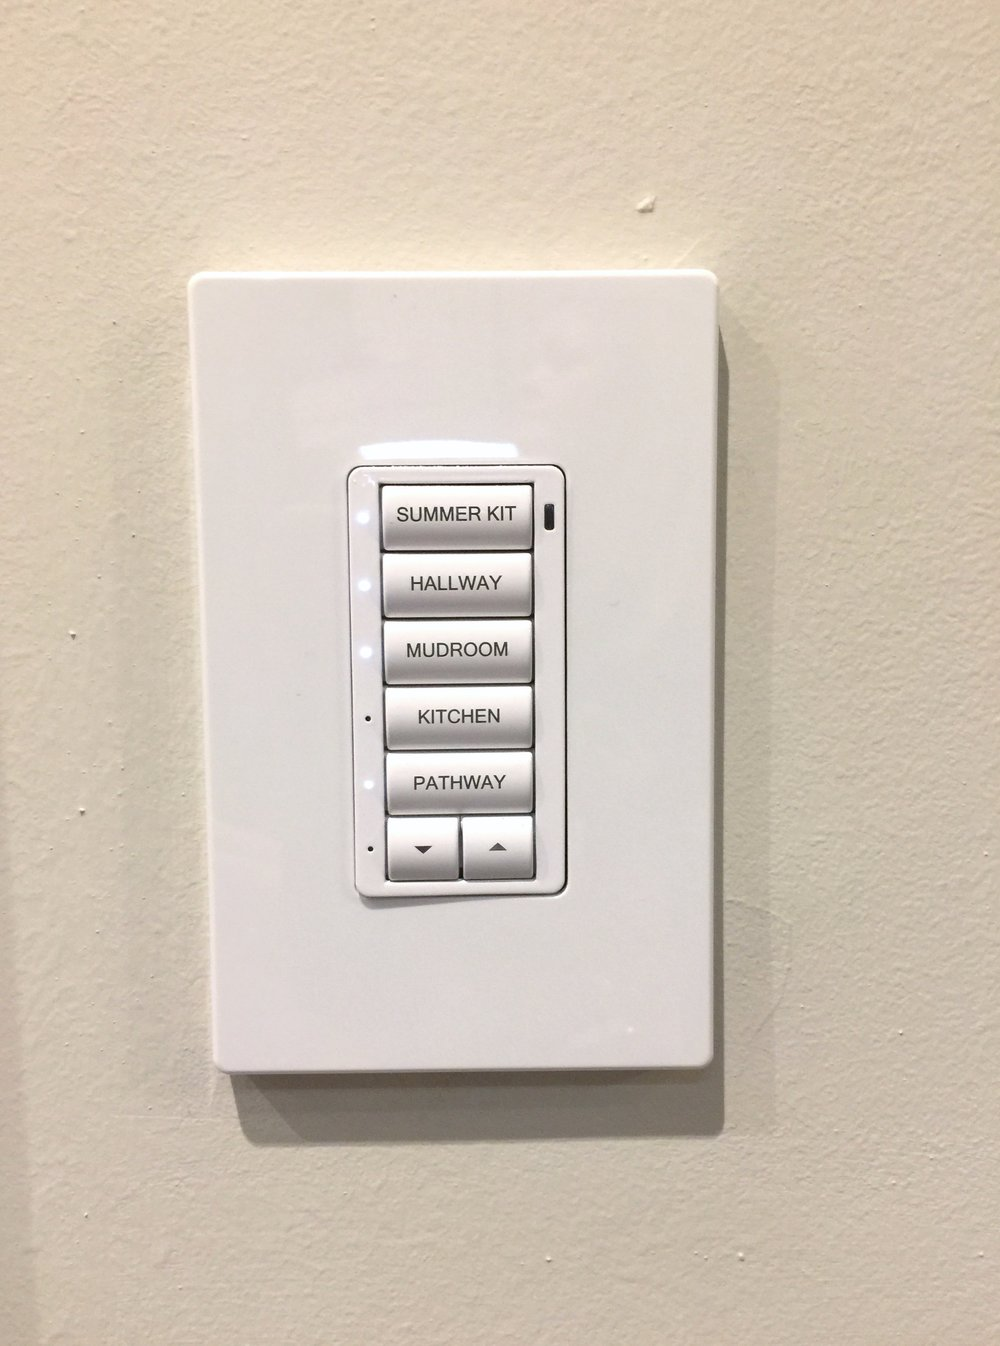 Legrand switches were labeled and all stacked into one single switch plate. :-)Kitchen in The New American Remodel - Orlando, KBIS #lightswitch